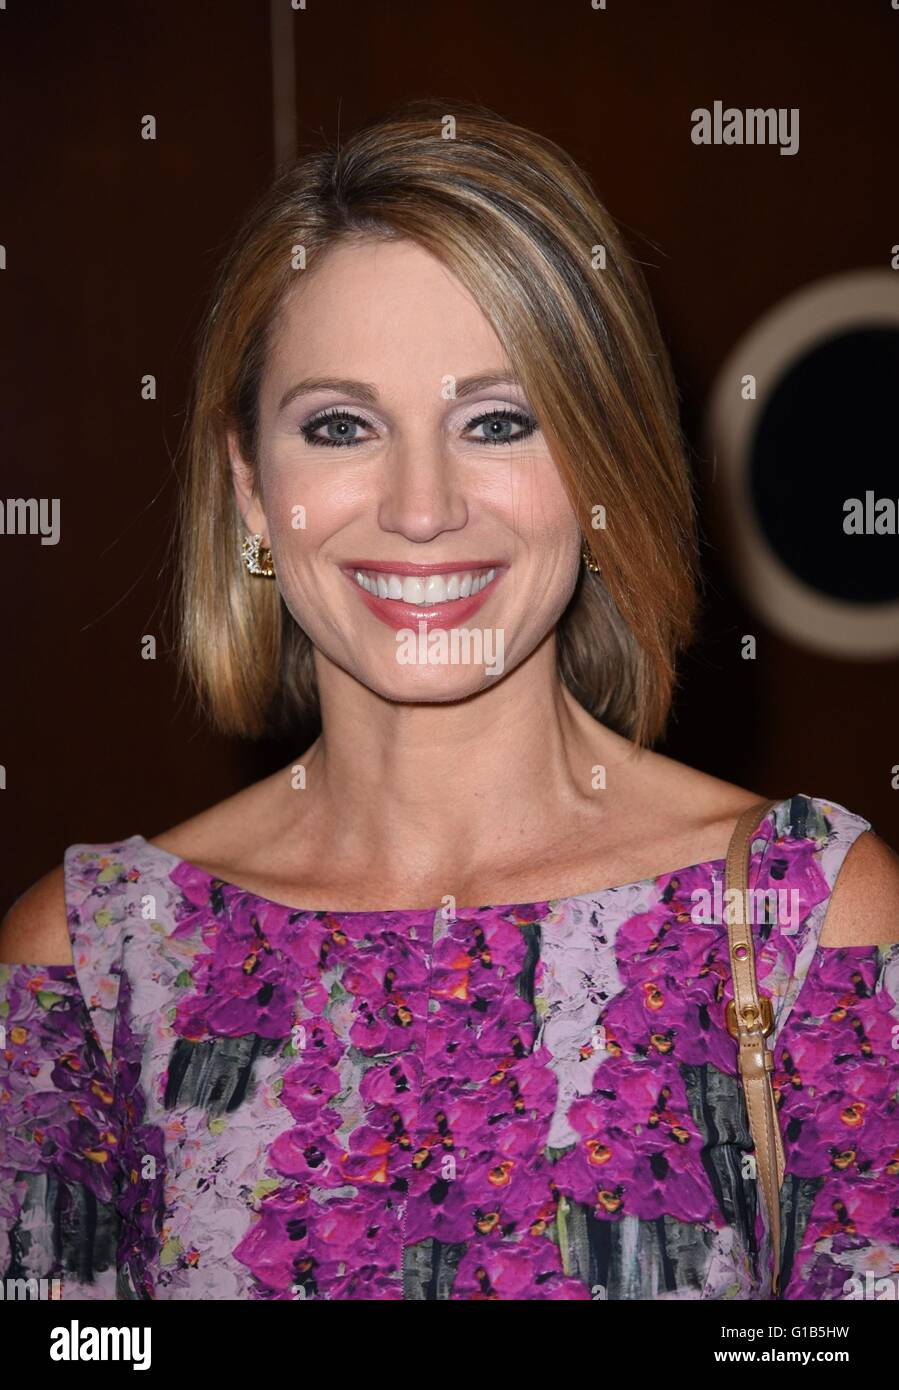 New York, NY, USA. 12th May, 2016. Amy Robach in attendance for Forbes Women's Summit, Pier 60, Chelsea Piers, New Stock Photo